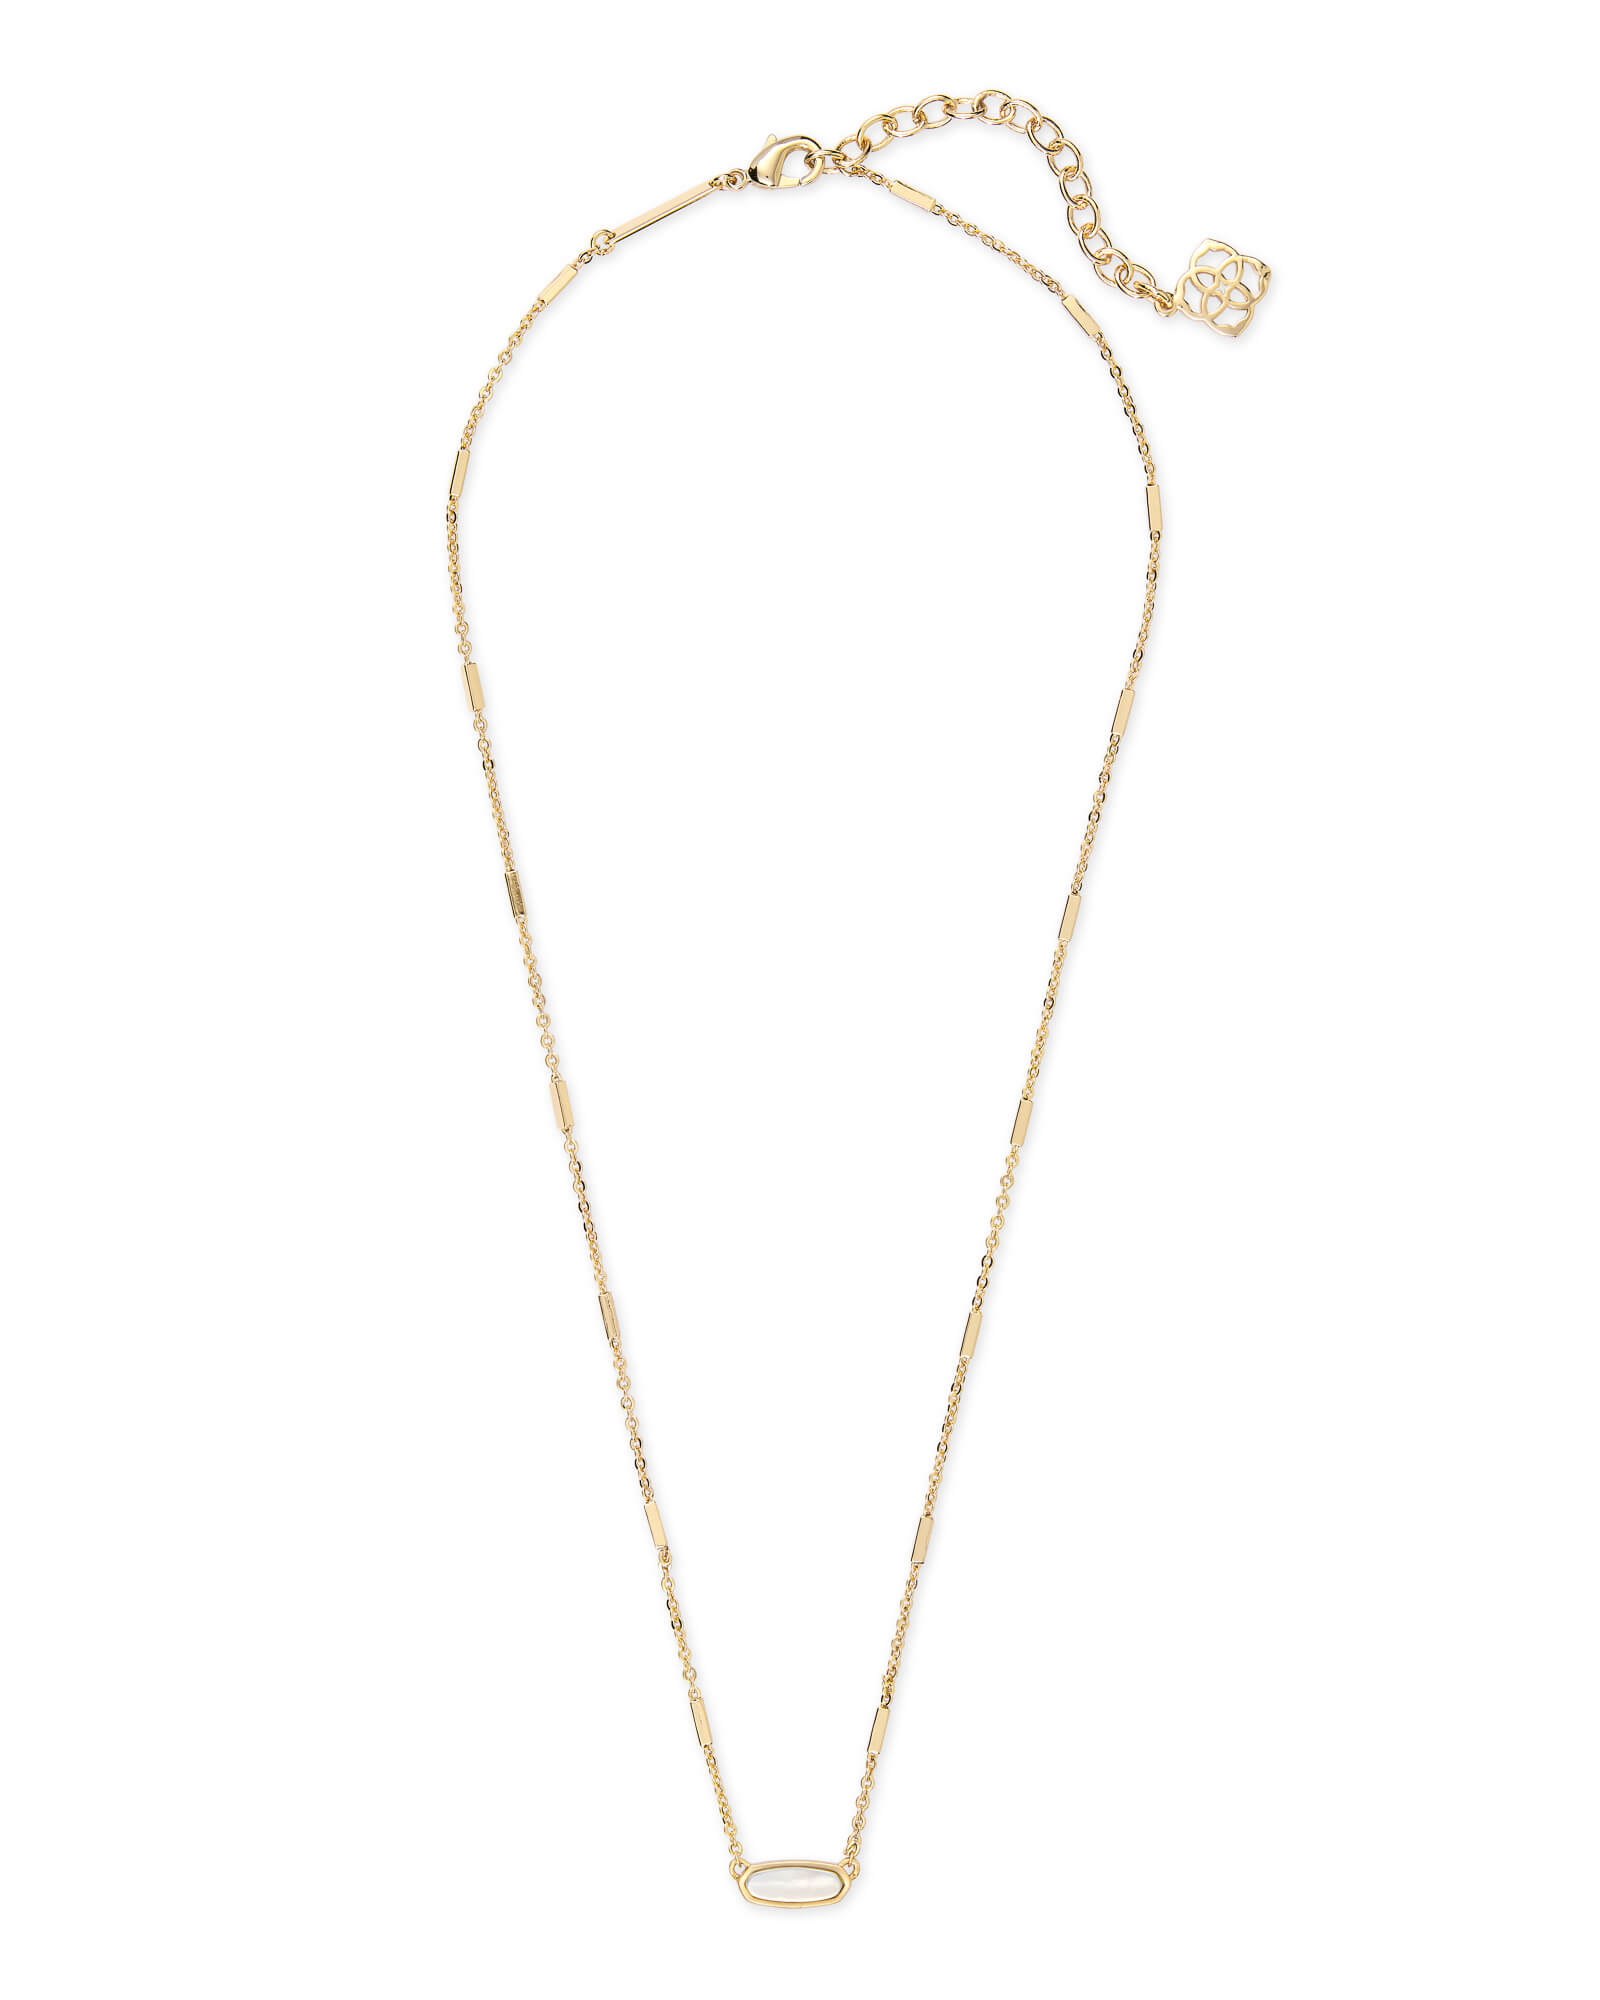 Miya Gold Pendant Necklace in Ivory Pearl